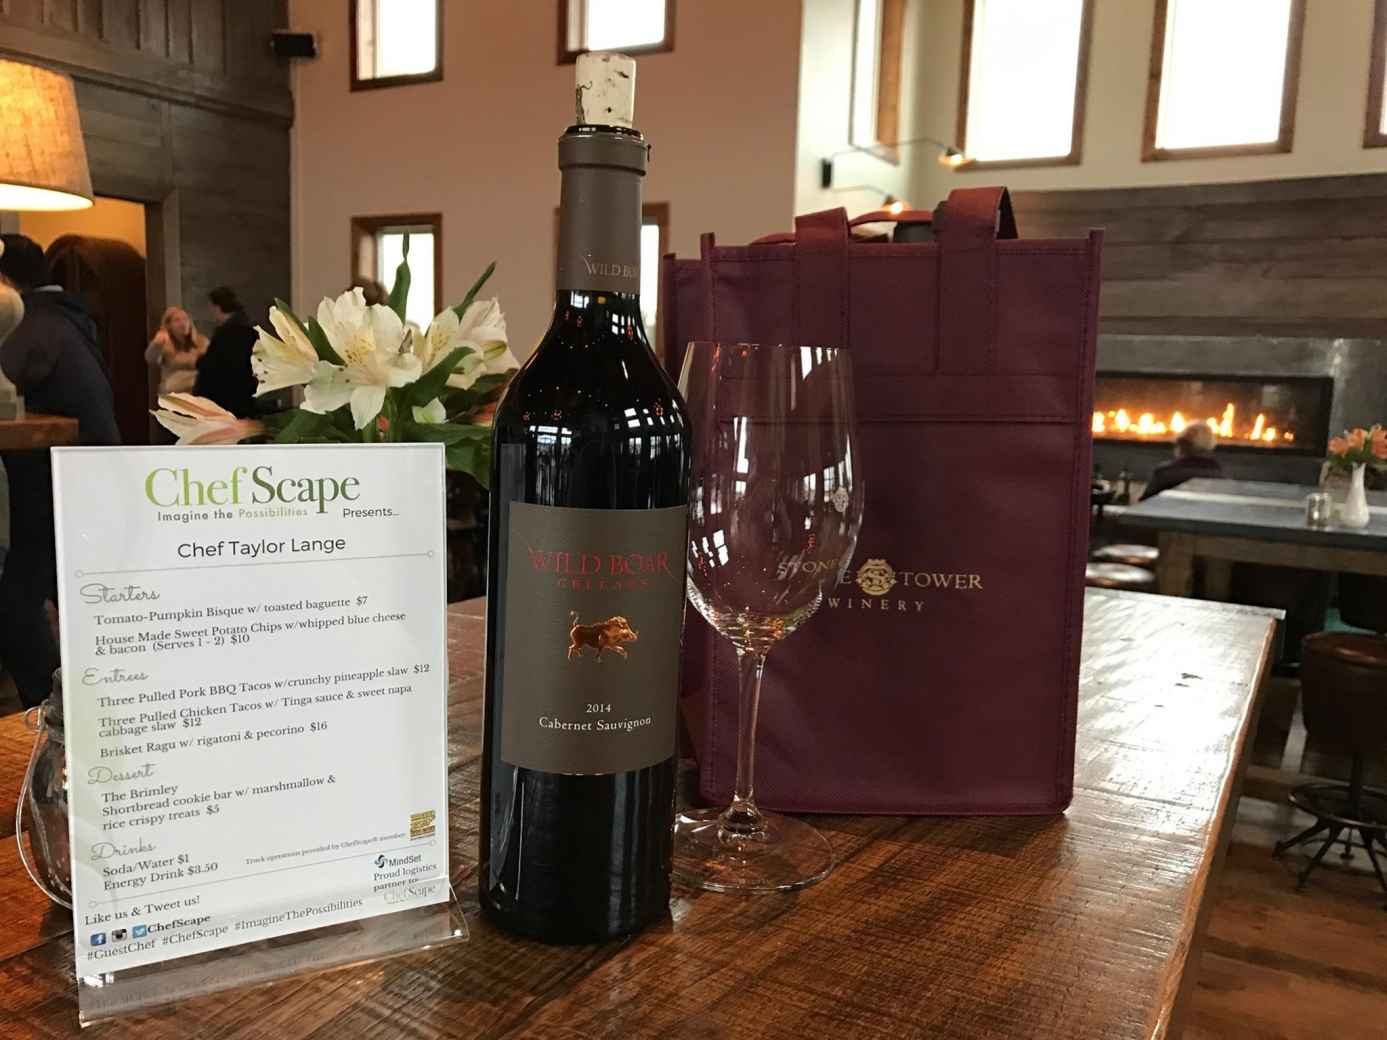 ChefScape® and MindSet Solutions Create a Mobile Pop-Up Restaurant at Stone Tower Winery